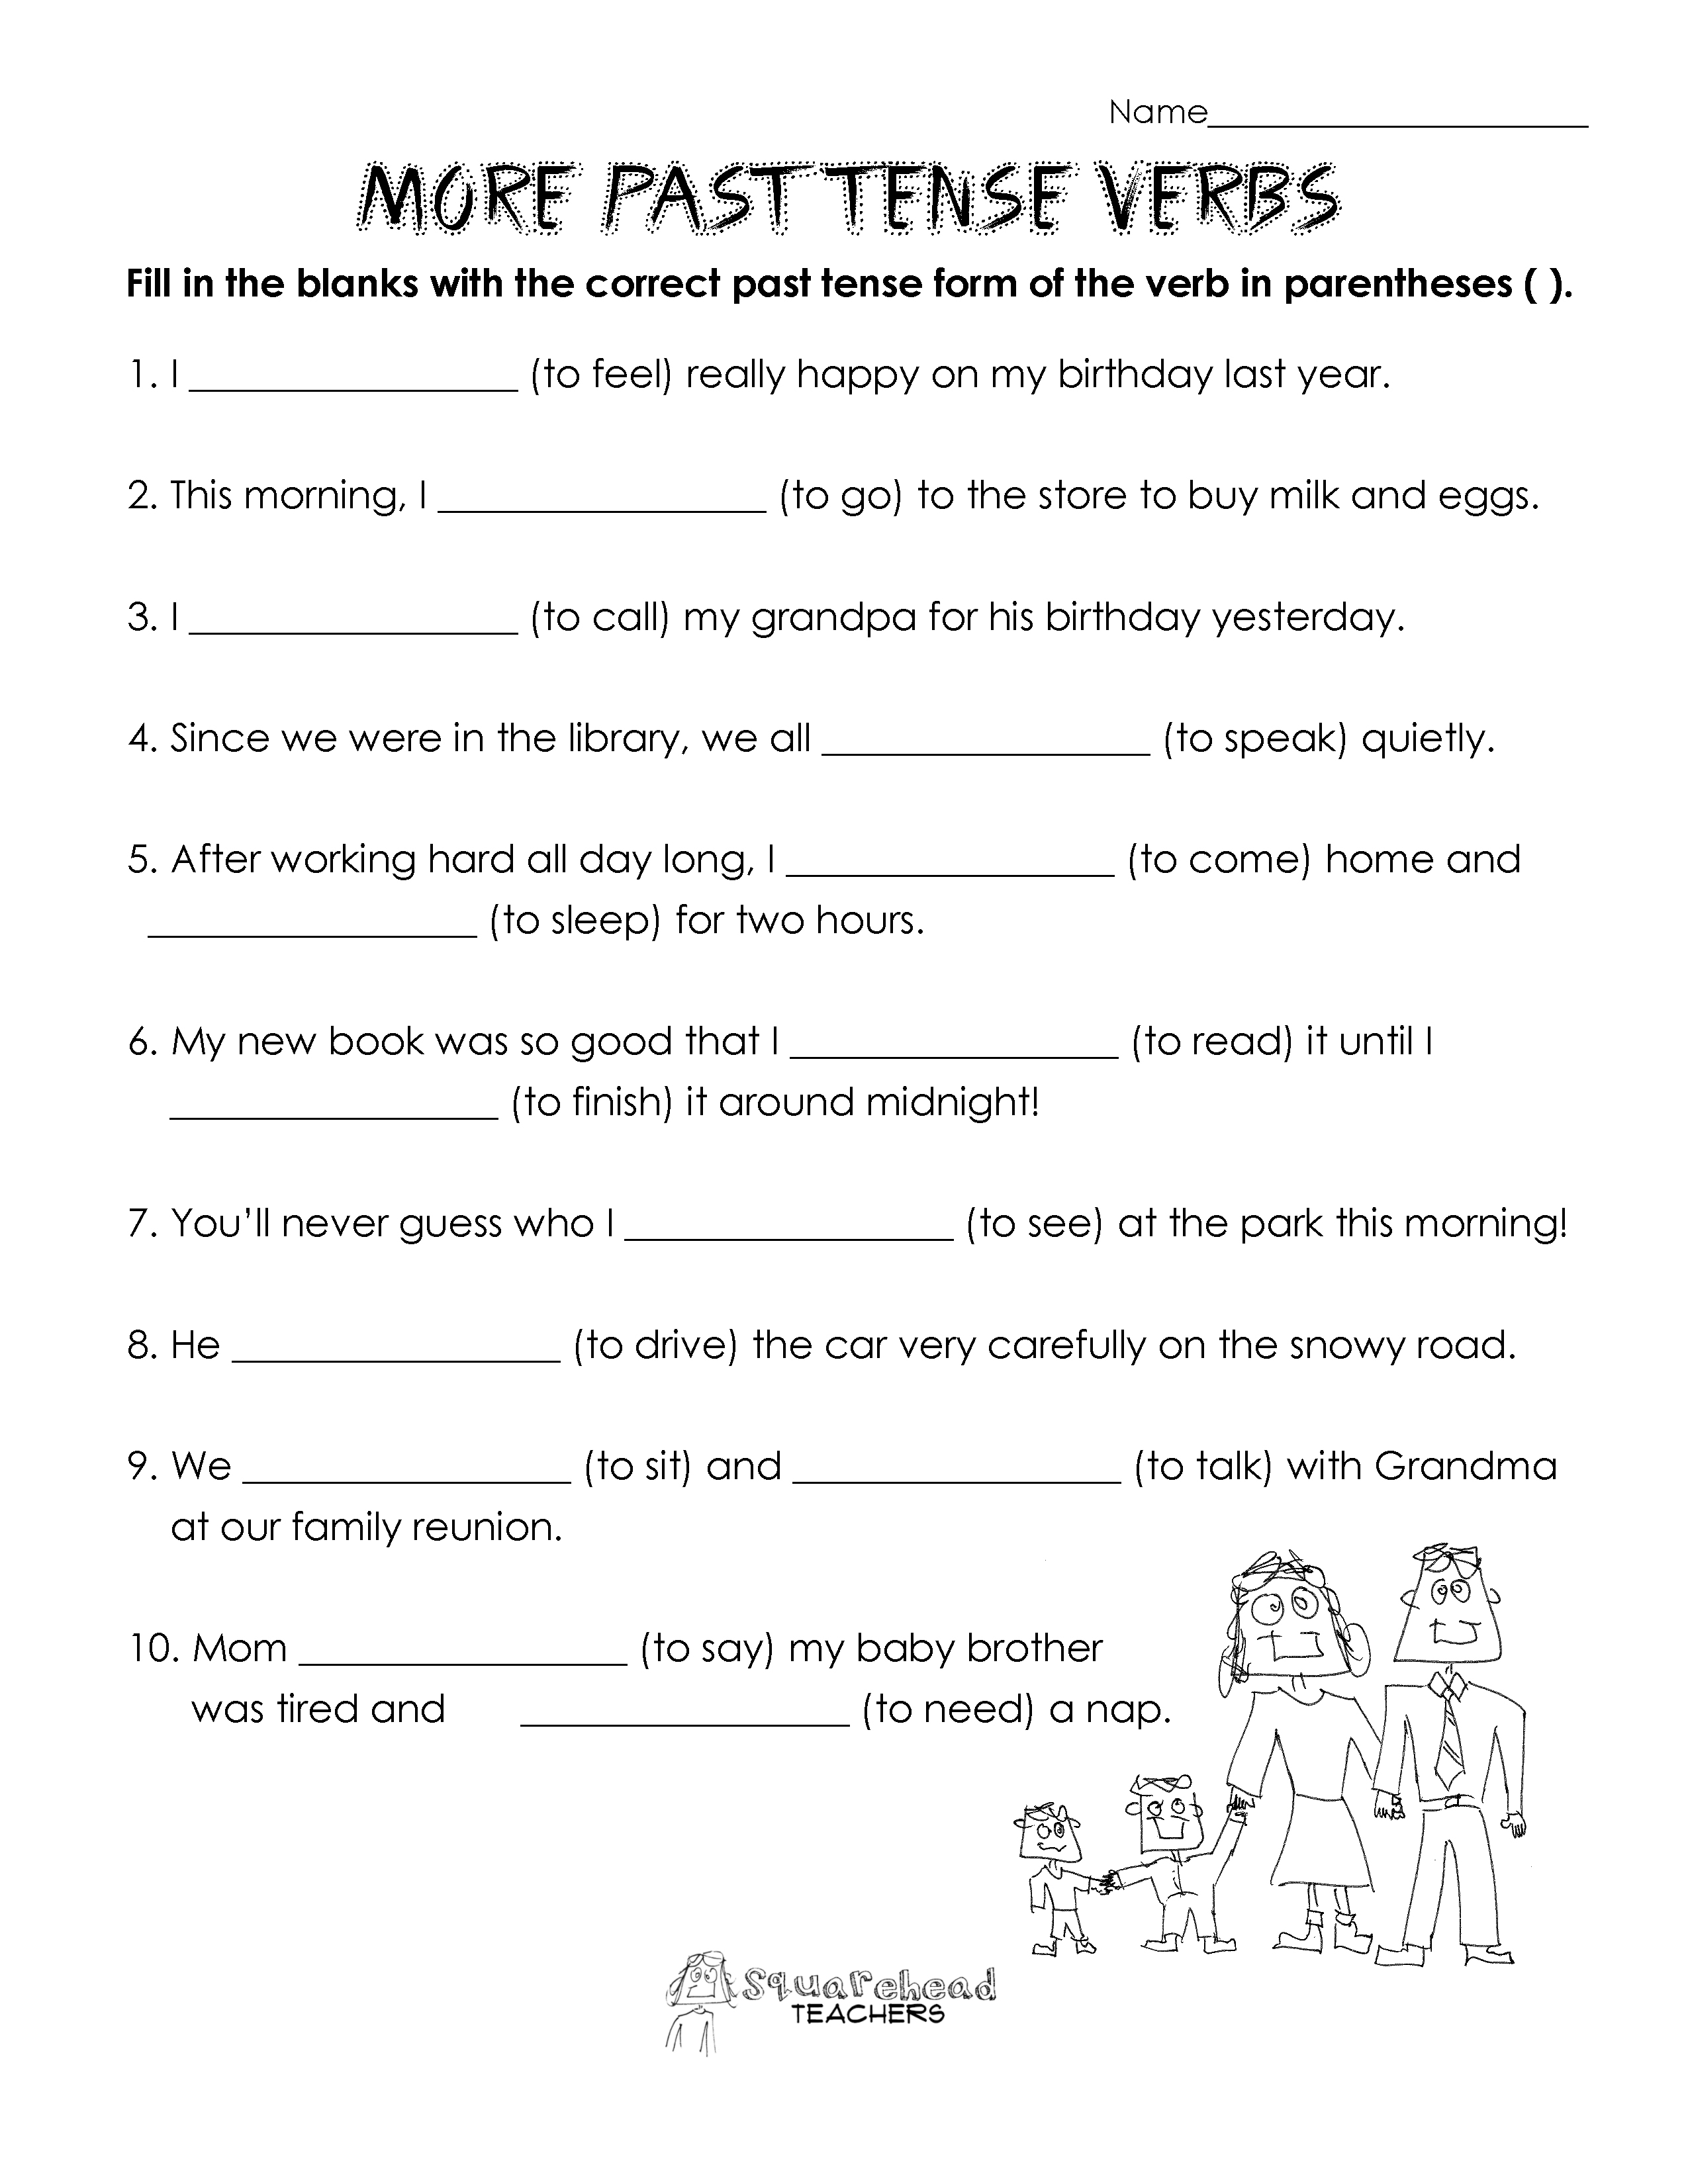 19 Best Images Of Past Tense Verbs Worksheets 2nd Grade